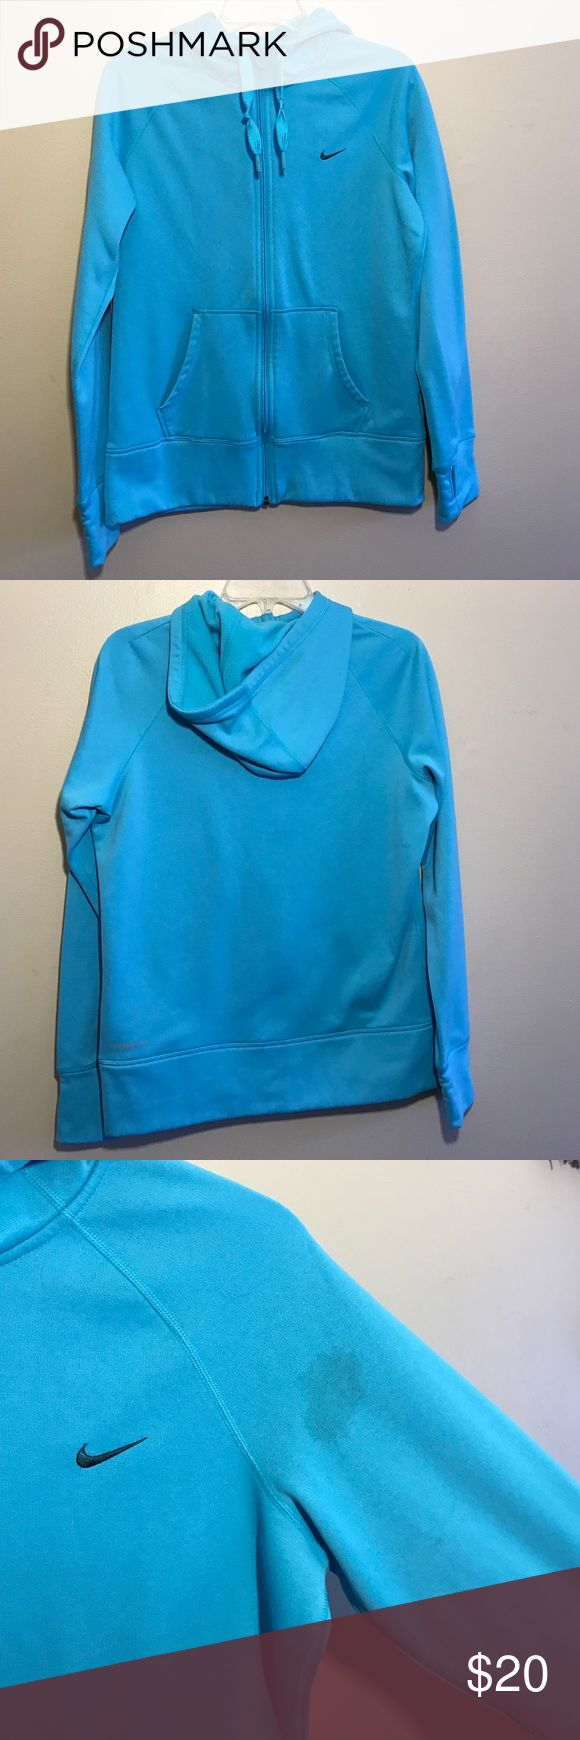 Nike Therma Fit women's zip up hoodie size M This women's Nike hoodie is in overall great wearing condition! I only wore it a couple times and washed once. Only flaw is that it somehow got stained on the left sleeve, shown in third photo. Other than that, it's in great condition! Draw strings on hoodie never pulled or adjusted, has thumb holes, 2 front pockets. Color is a bright baby blue. Color in photo picks up a little darker than actual color in person. Gorgeous color though! Nike…